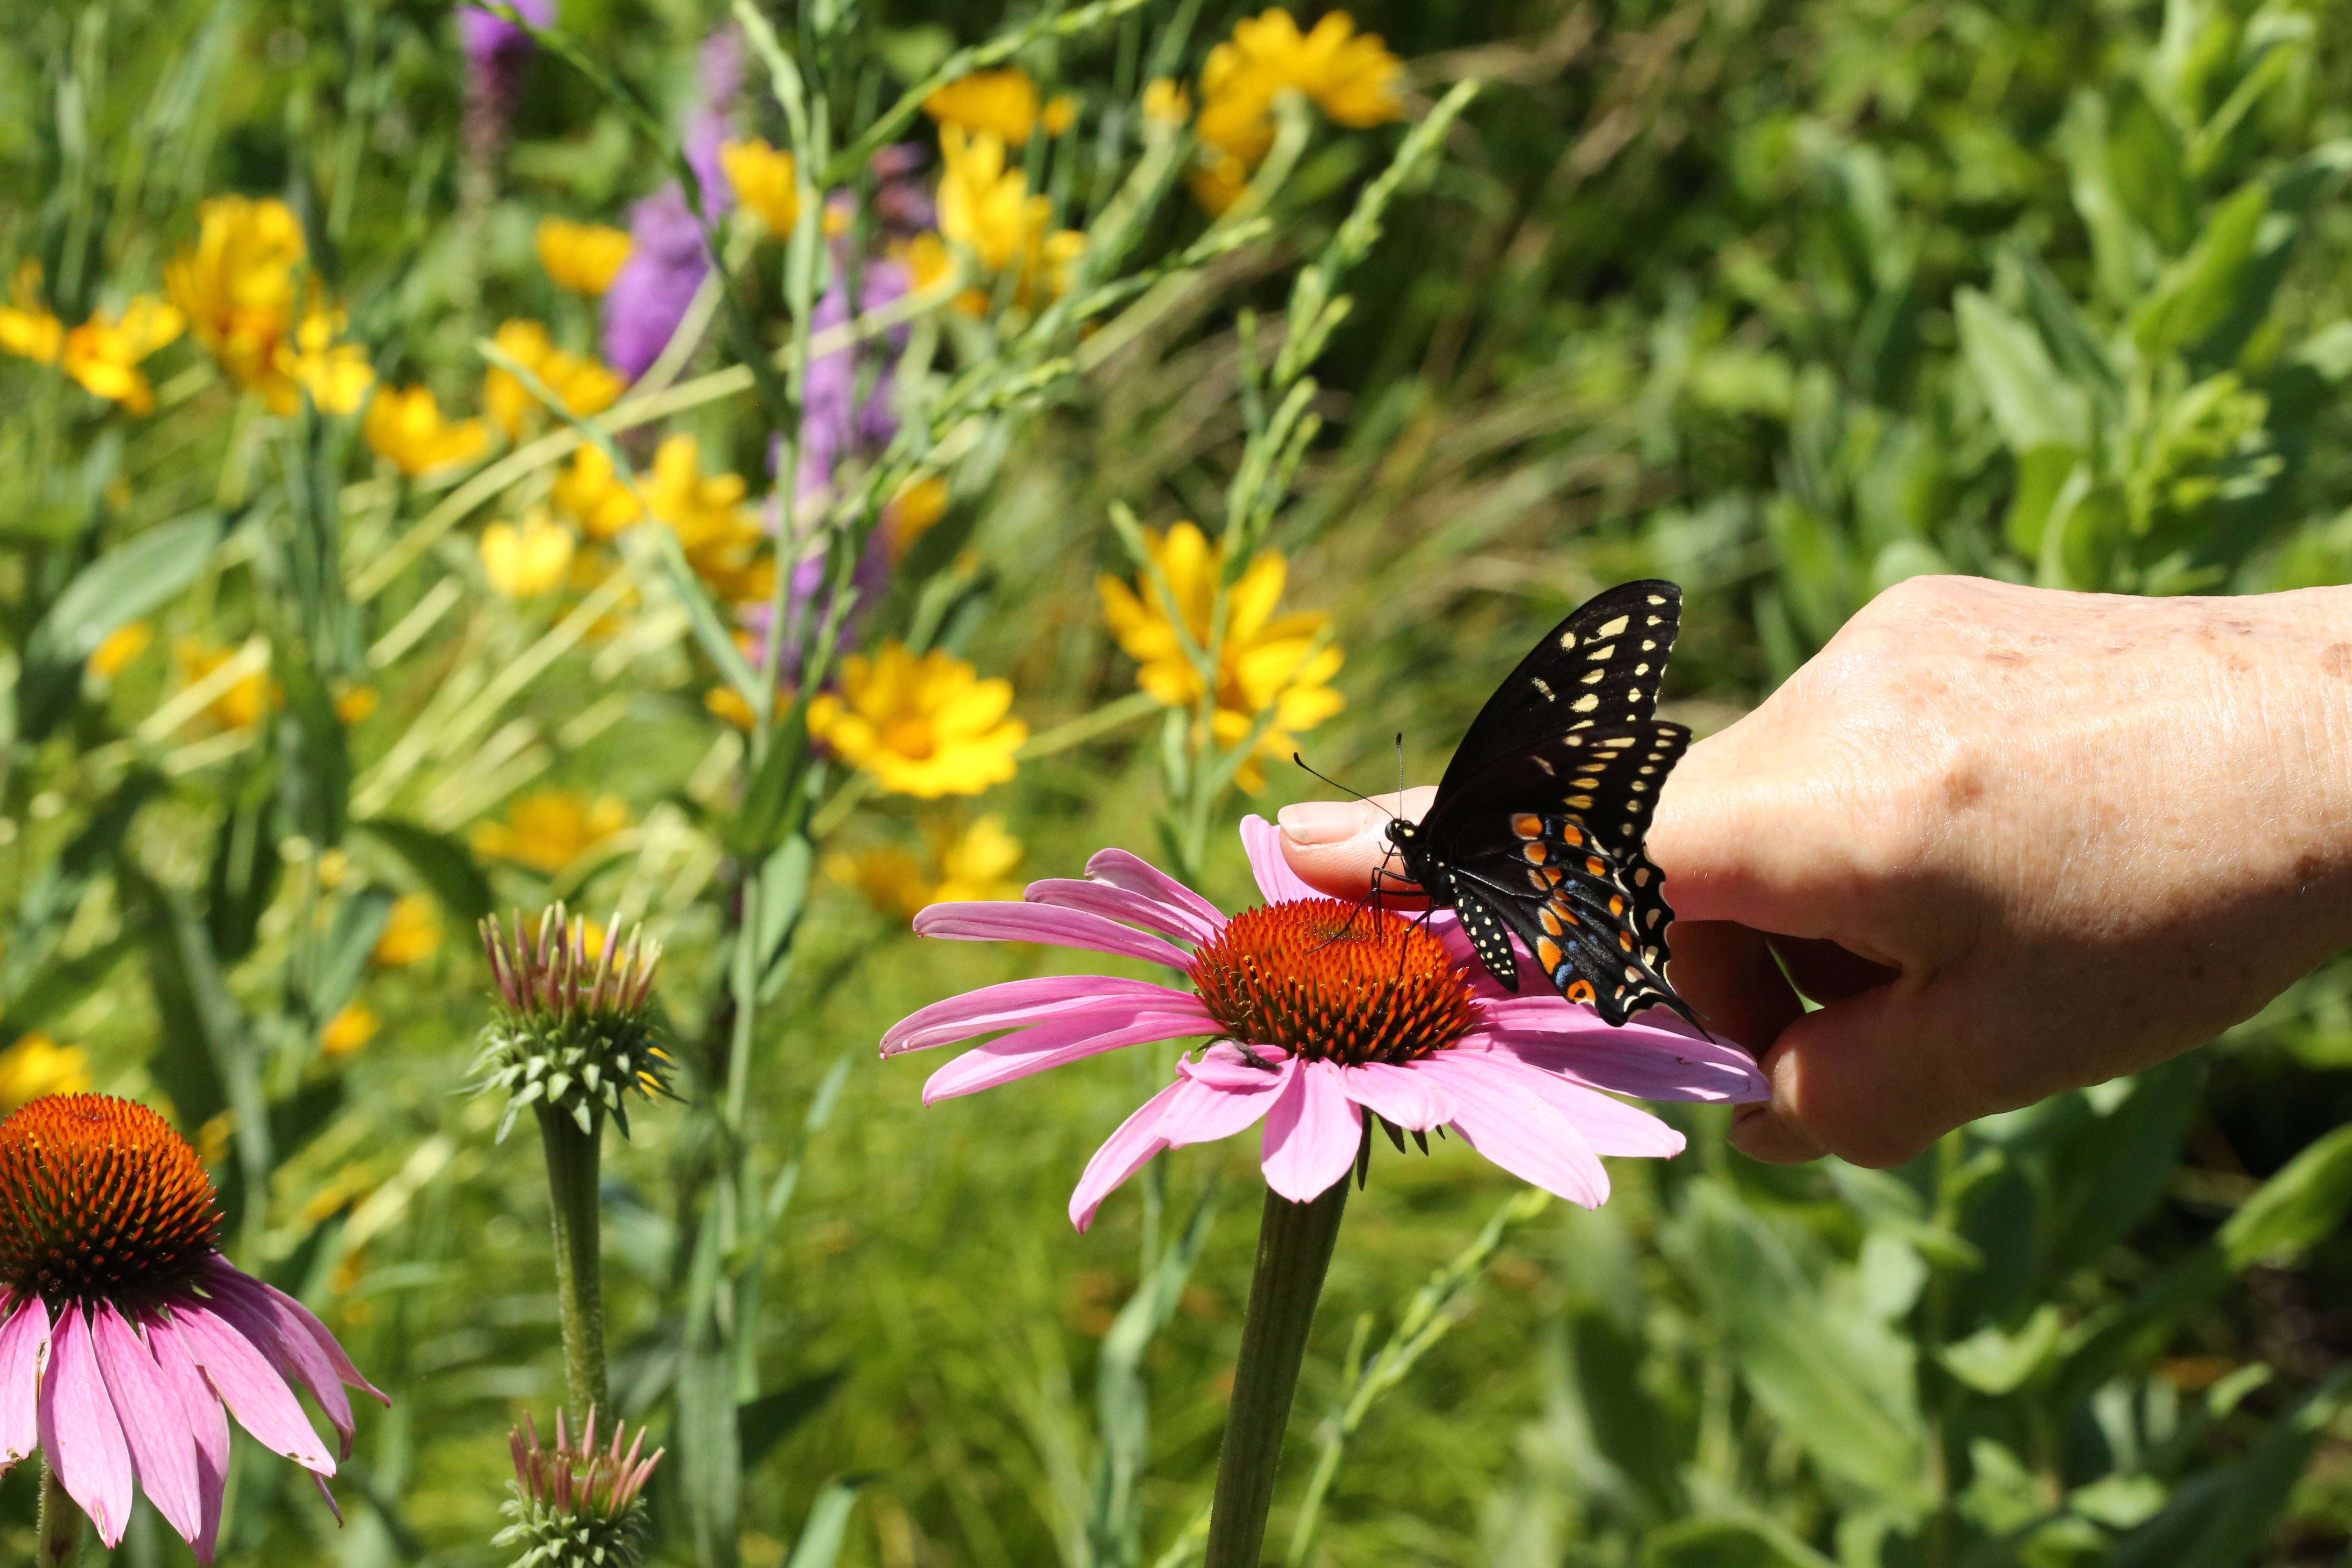 A Black Swallowtail butterfly snacks on purple coneflower to celebrate its release at DuPage Unitarian Universalist Church in Naperville.